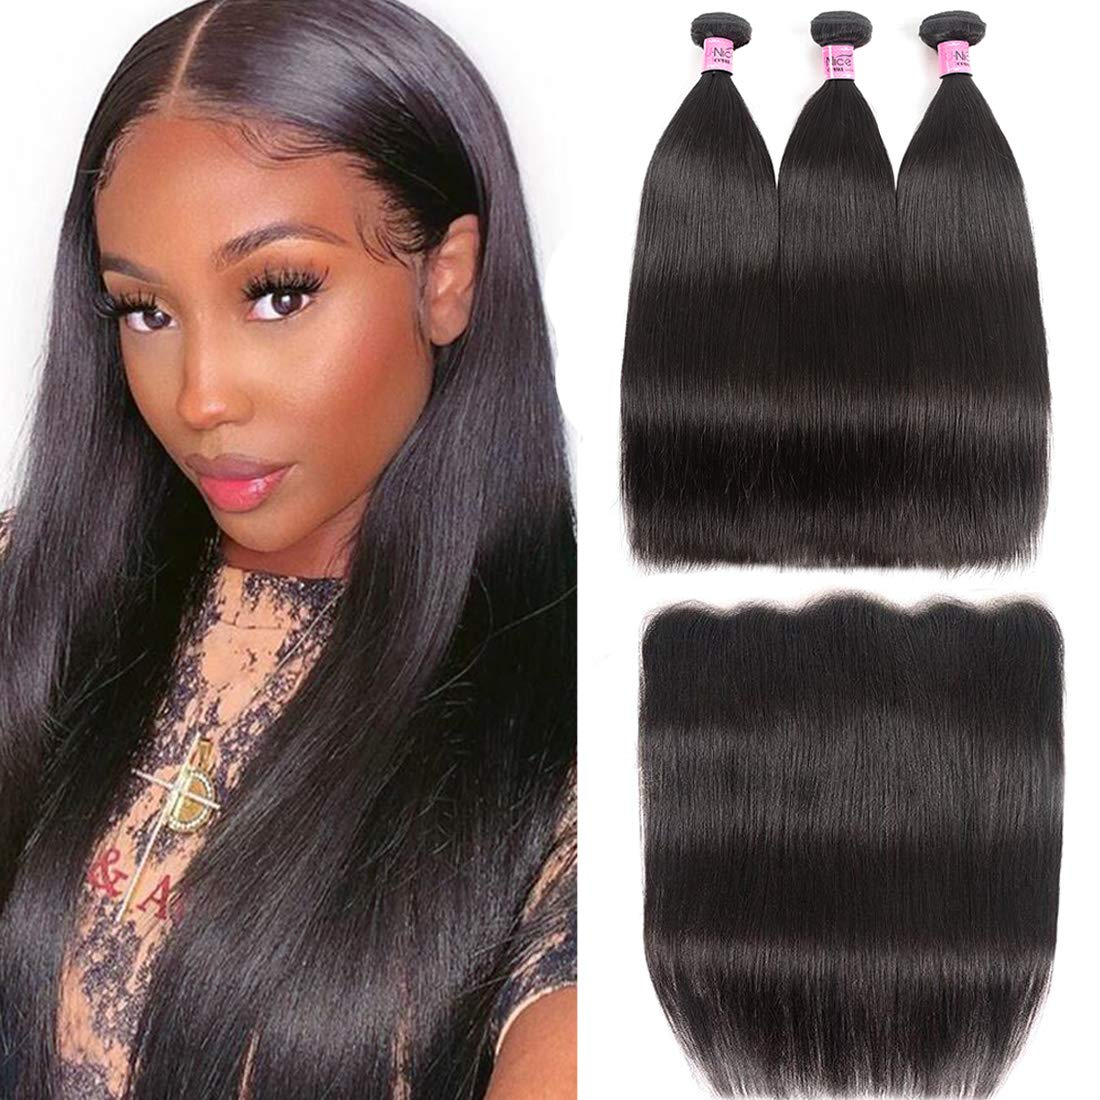 Unice Hair Malaysian Straight Virgin Hair 3 Bundles Wefts with 13X4 Ear to Ear Lace Frontal Closure Human Hair Extensions Natural Color (12 14 16+10Frontal)